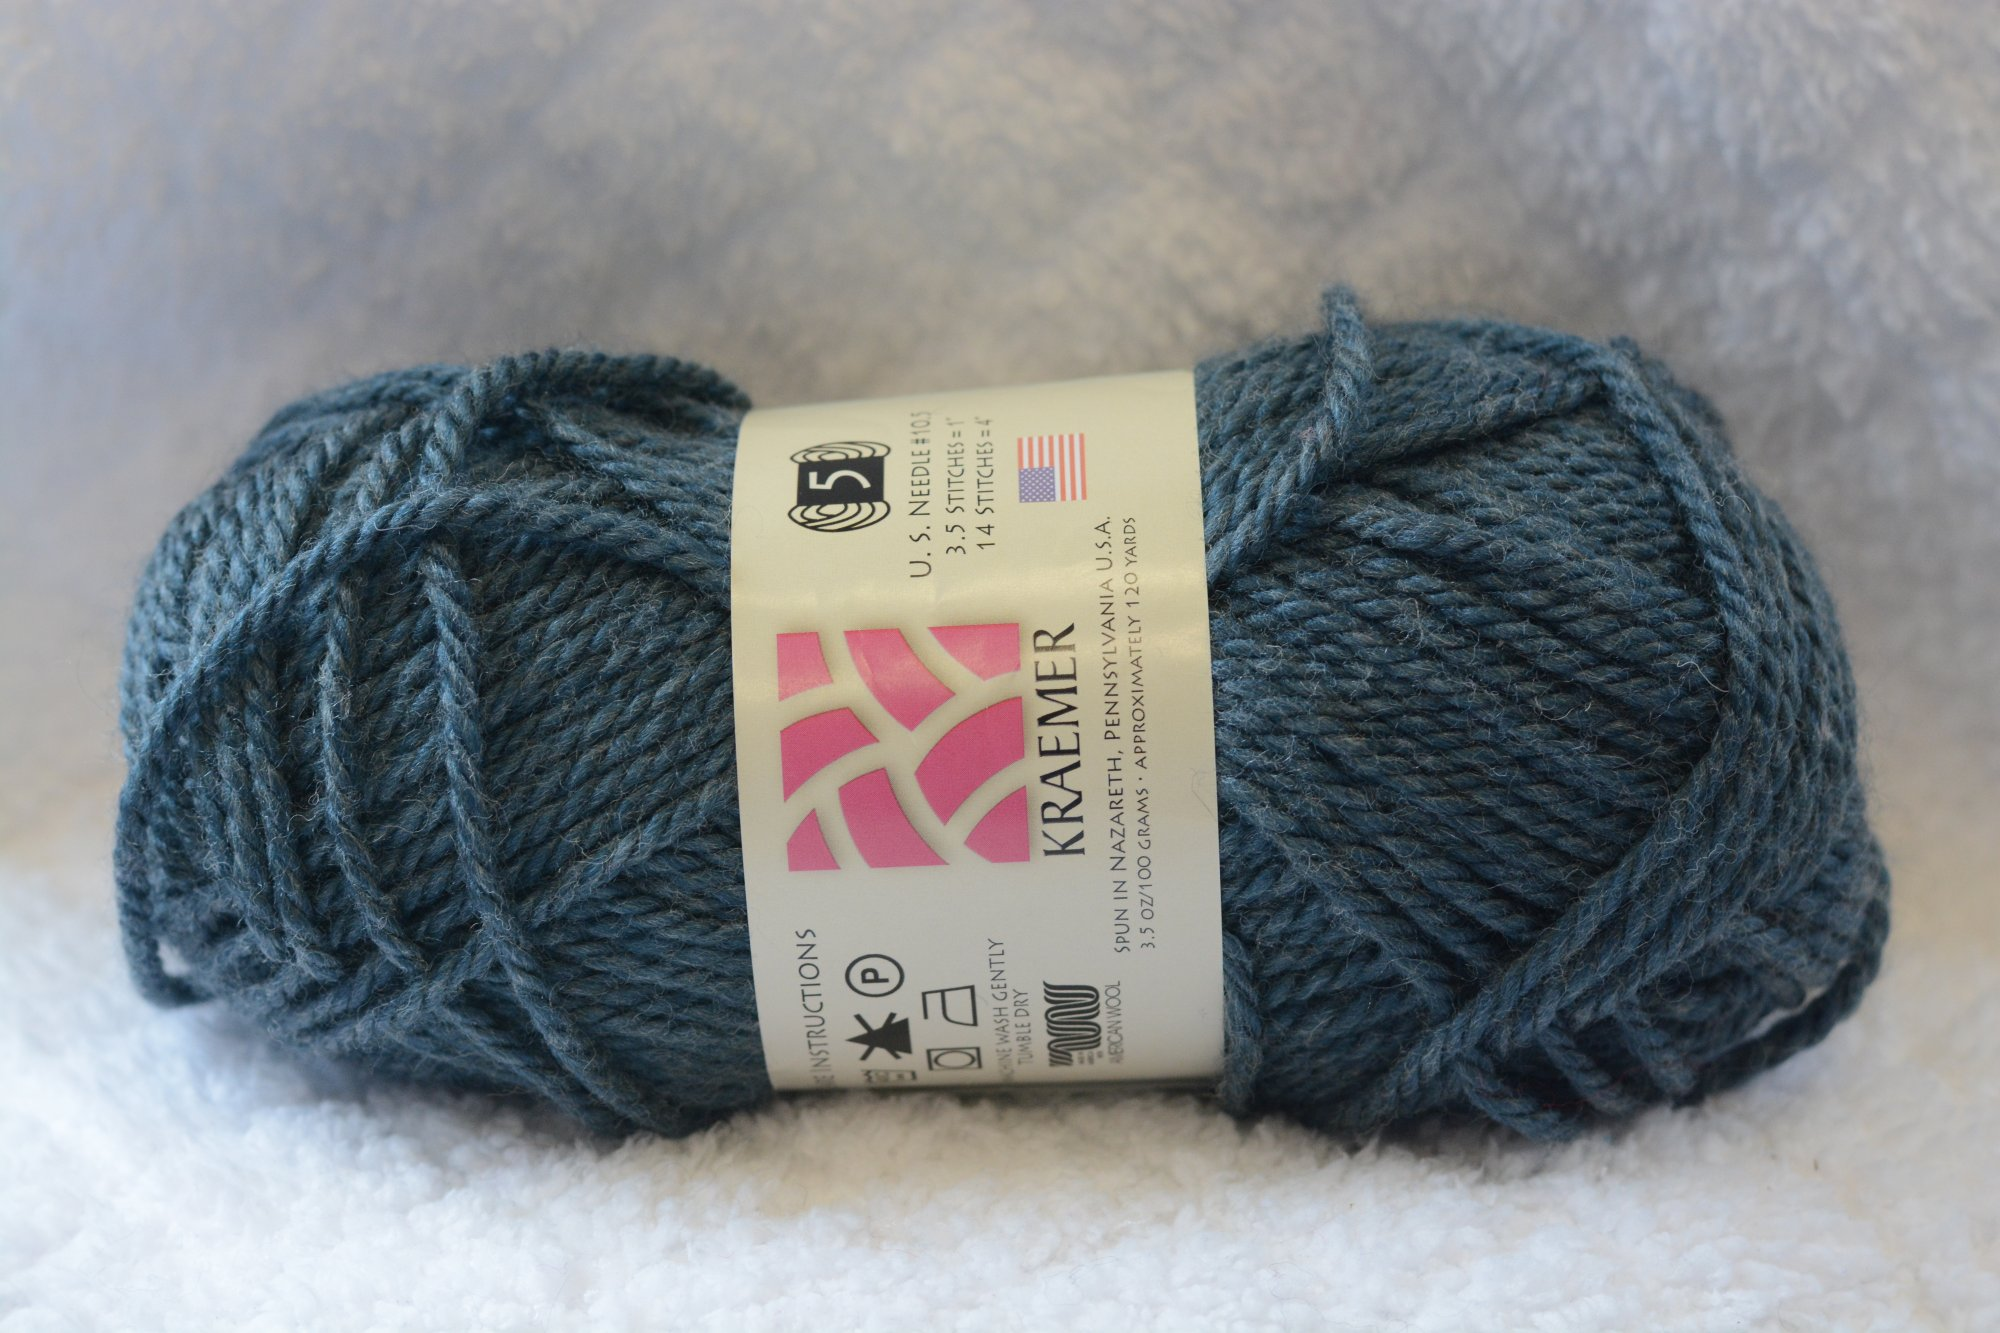 Perfection Chunky Y7033 - Winter Lake